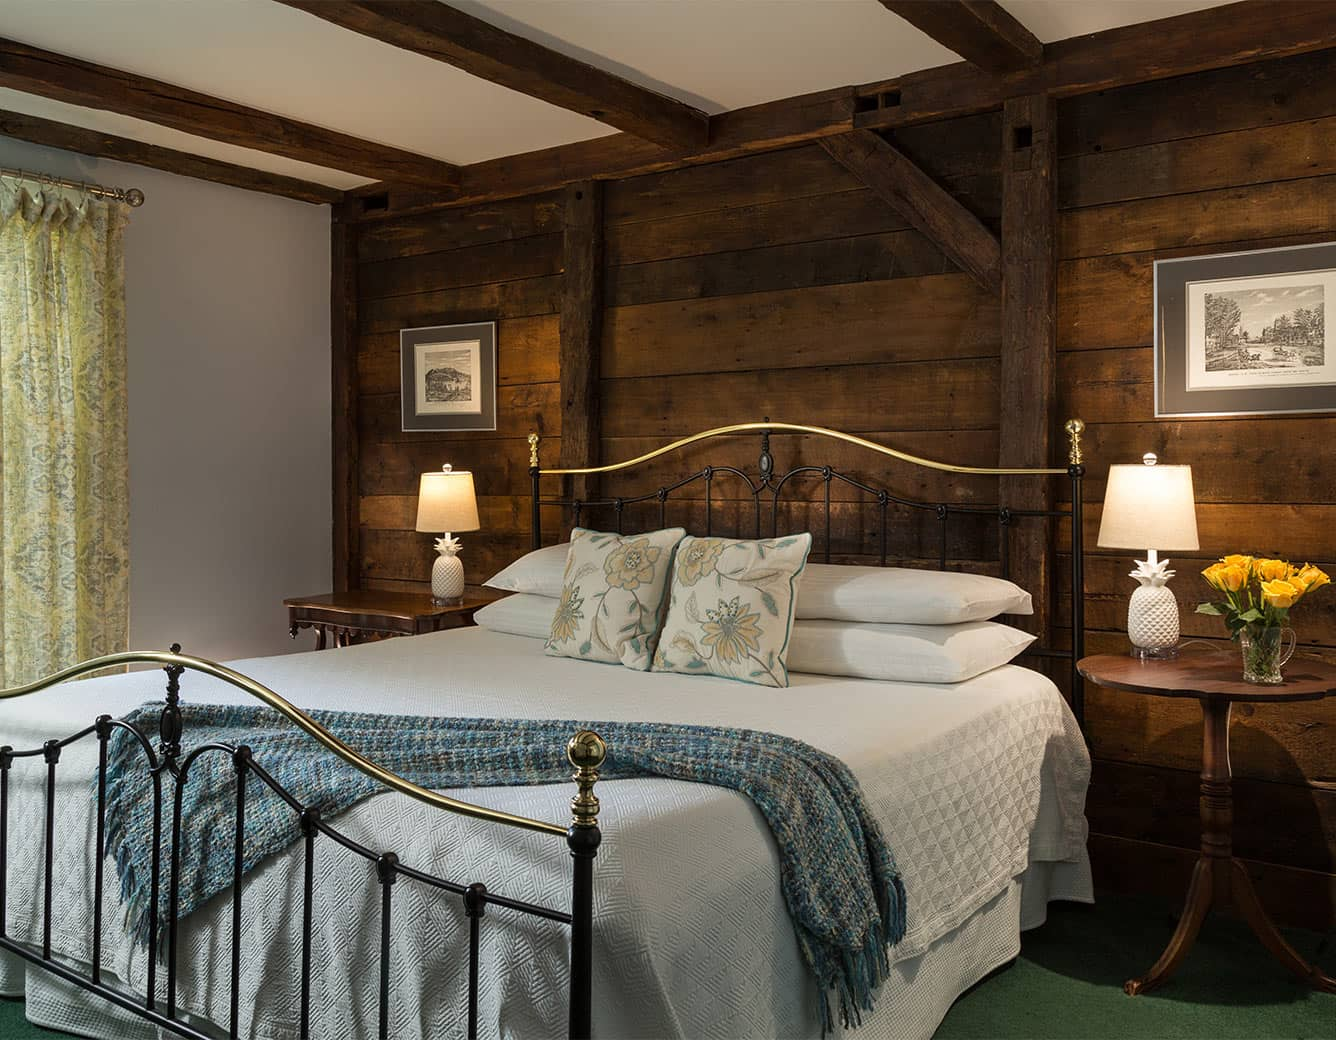 Bed in Room 10 with wood wall